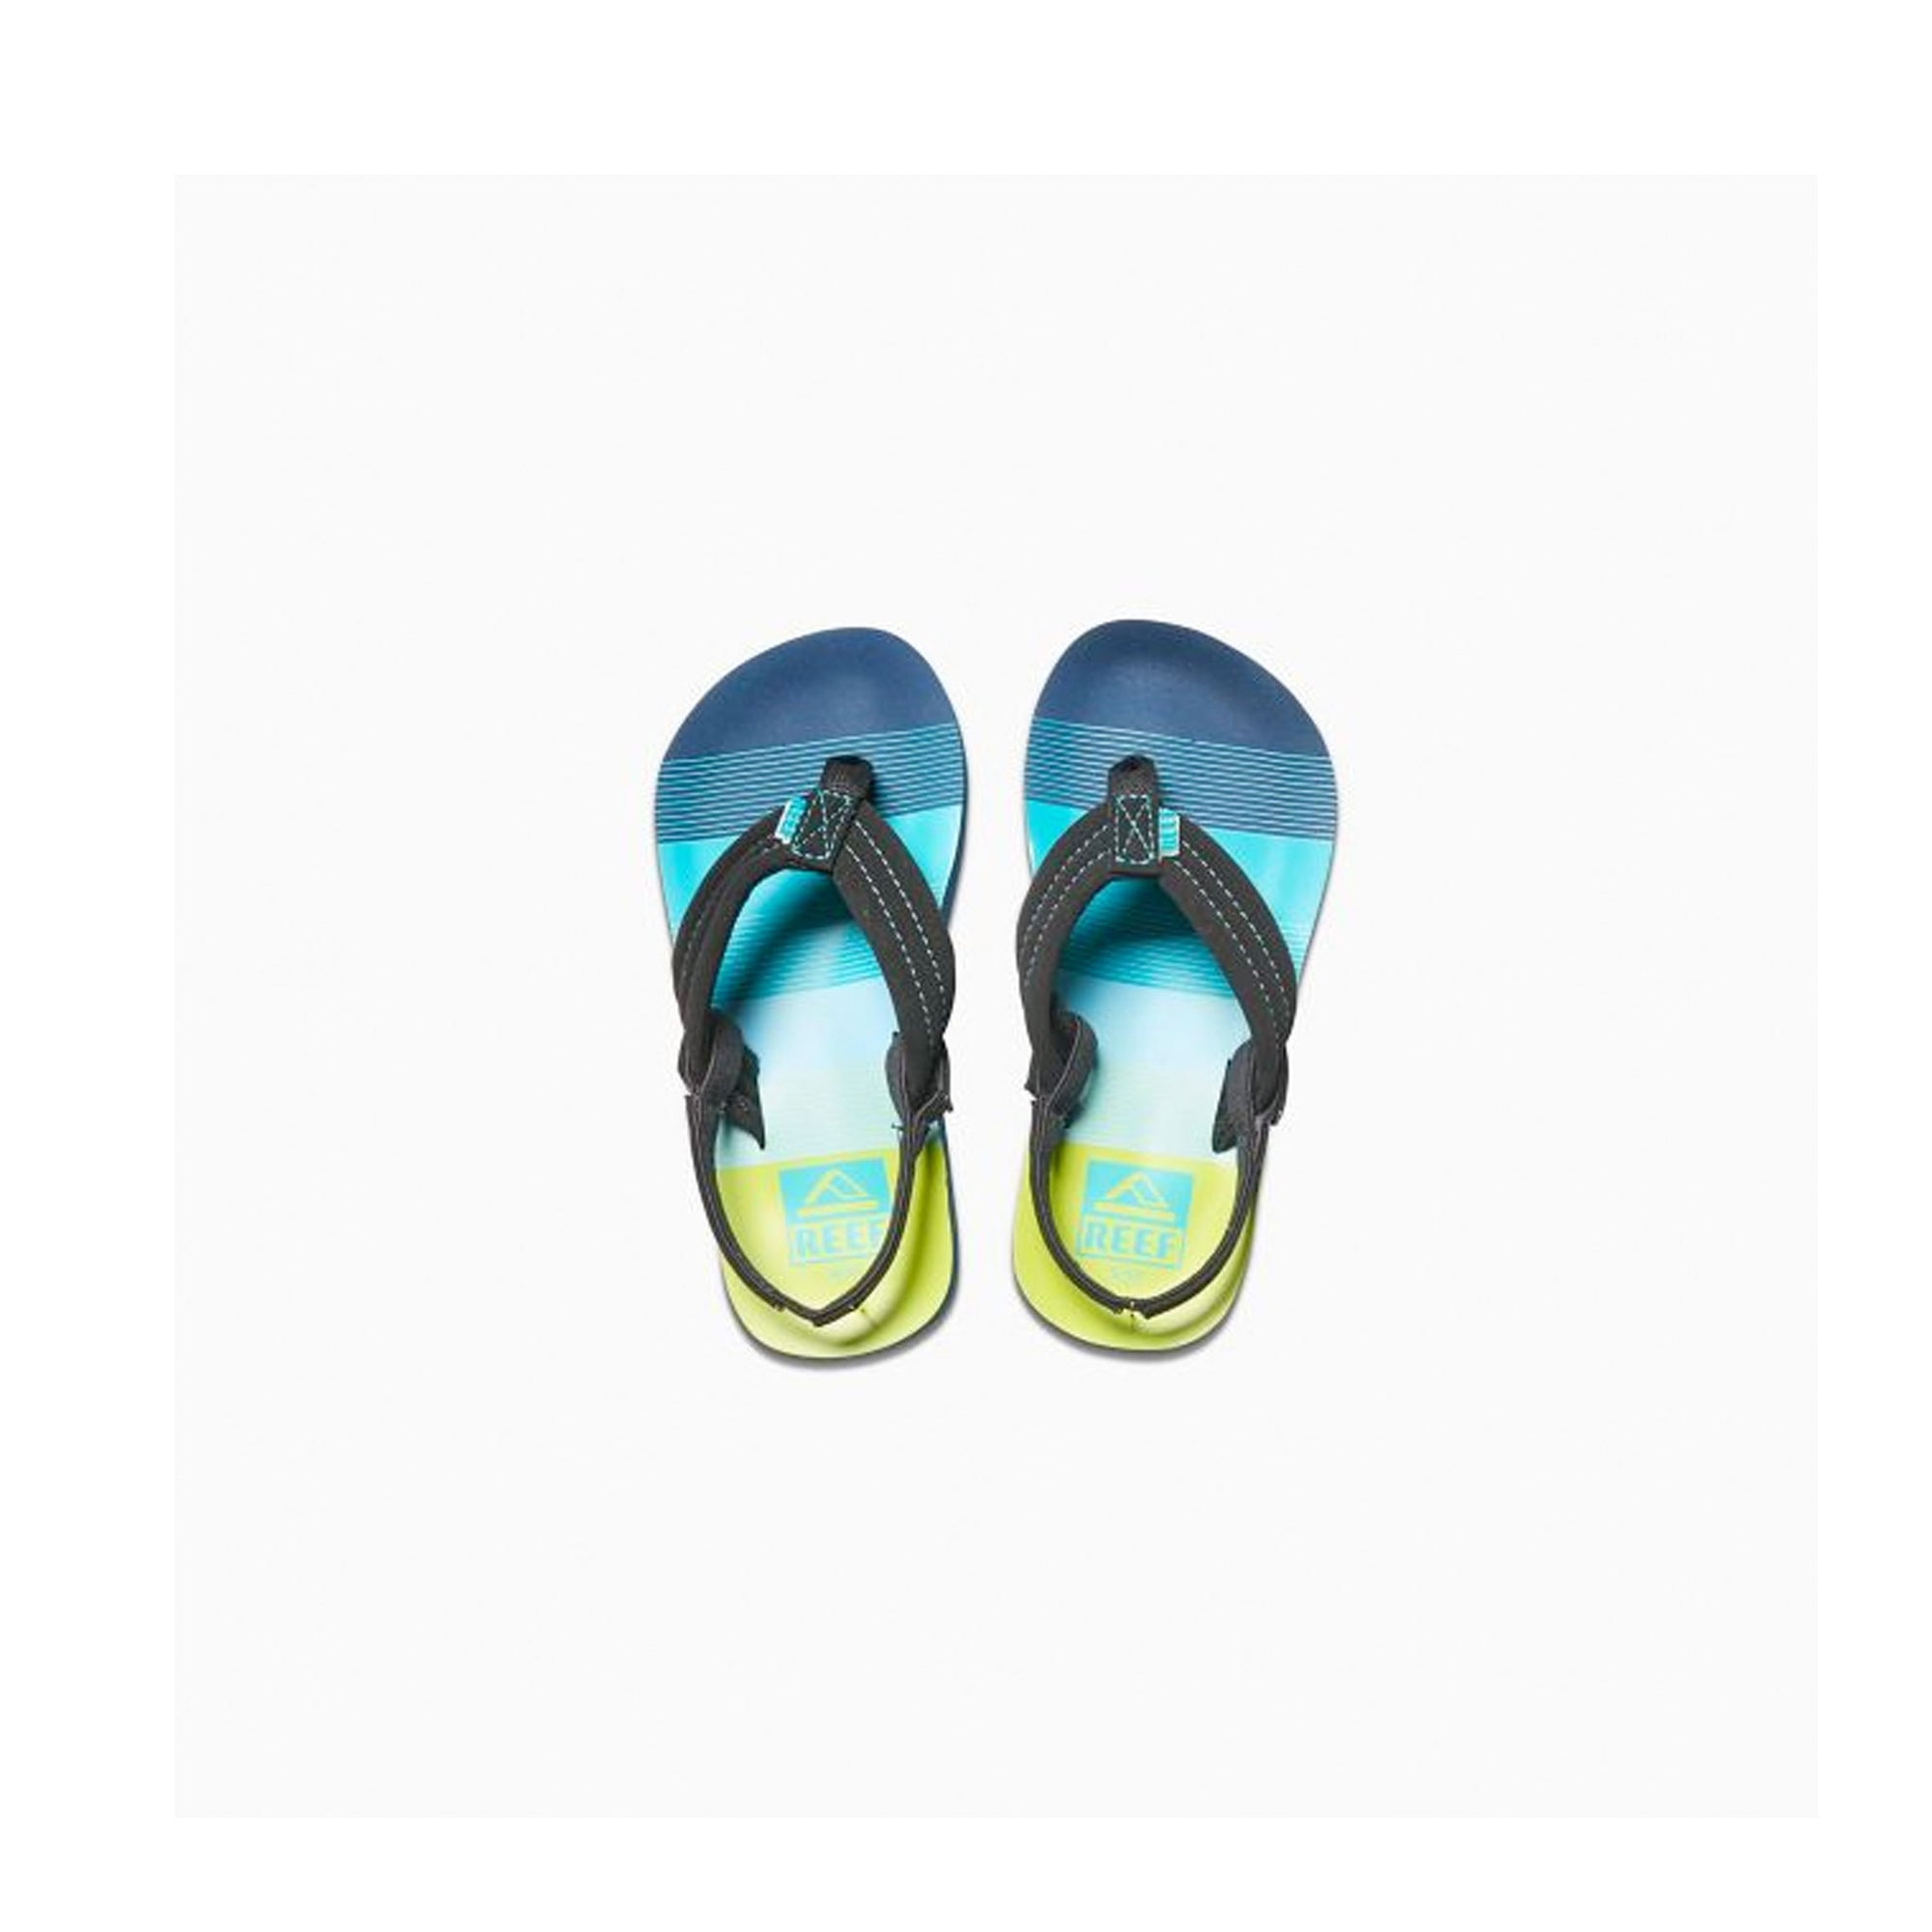 Reef Little Ahi Youth Boy's Sandals - Aqua/Green